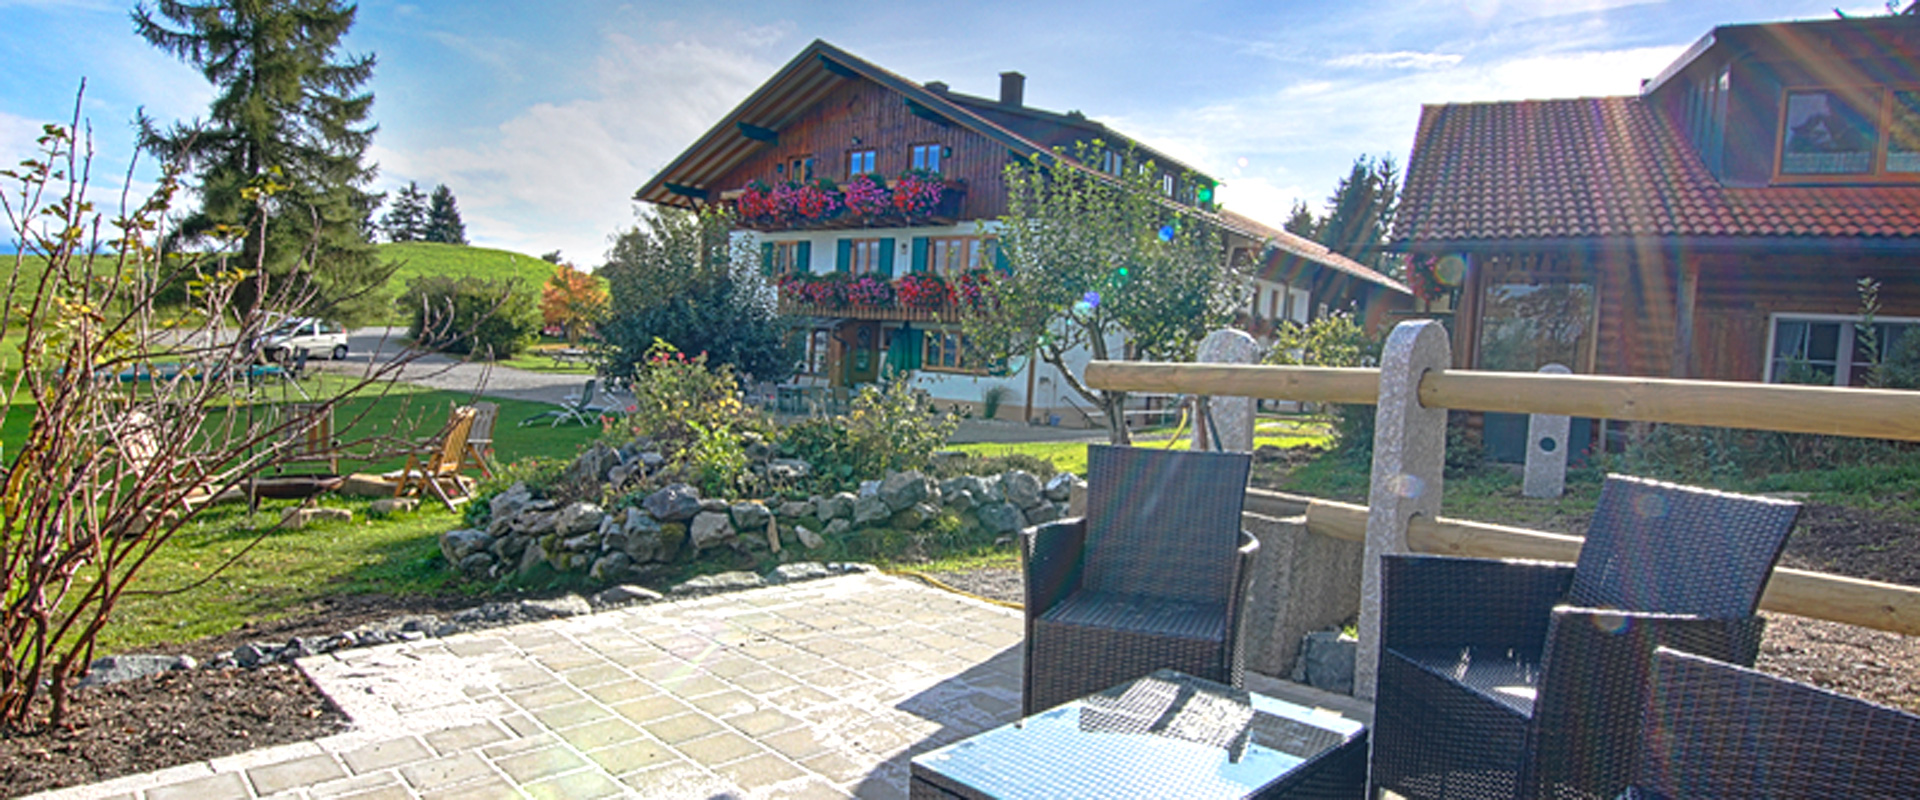 Terrasse Grillhuette HDR2b